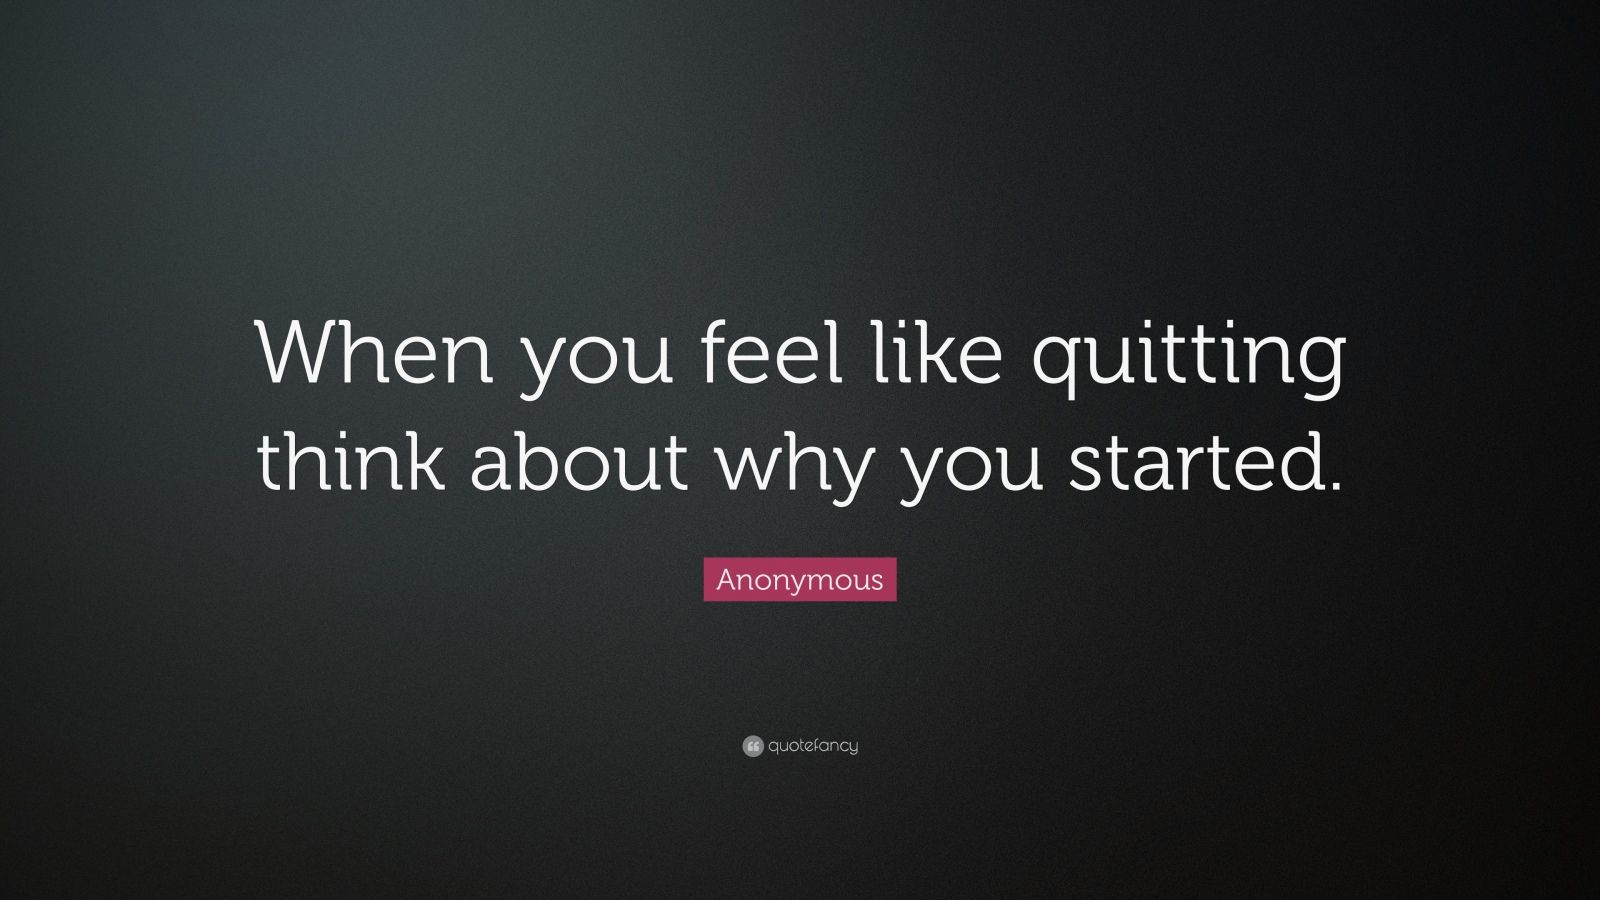 Anonymous quote when you feel like quitting think about why you started